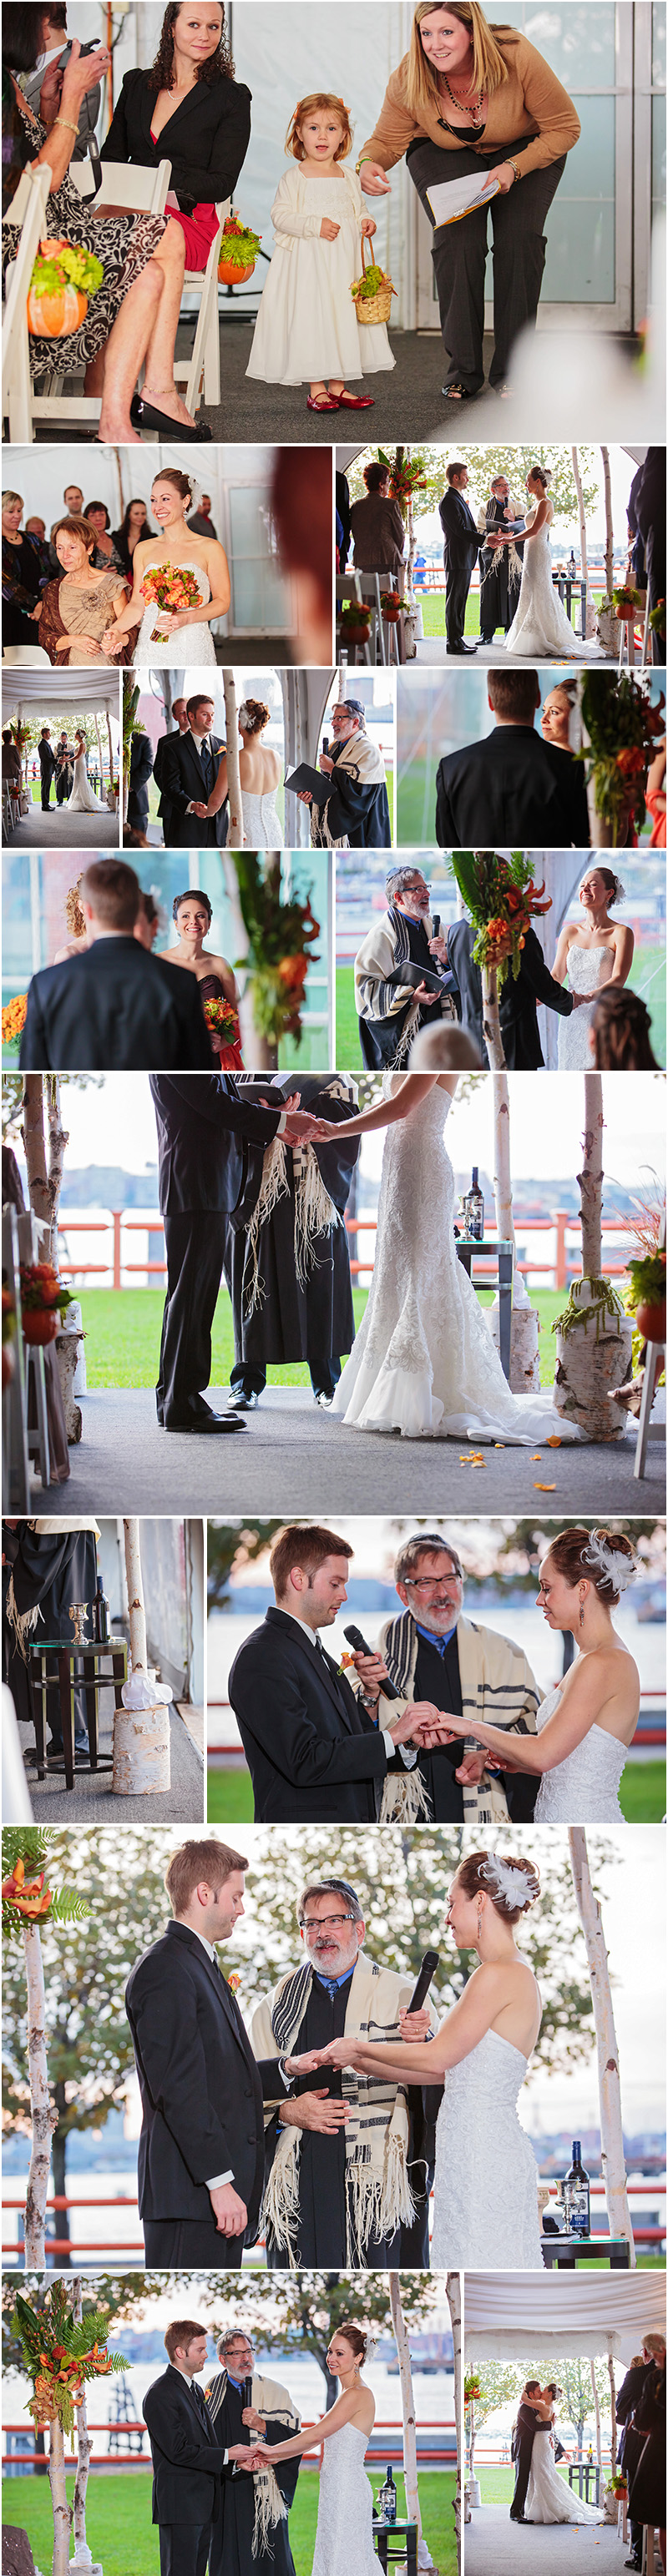 NEW ENGLAND WEDDING PHOTOGRAPHERS AT HYATT HARBORSIDE BOSTON